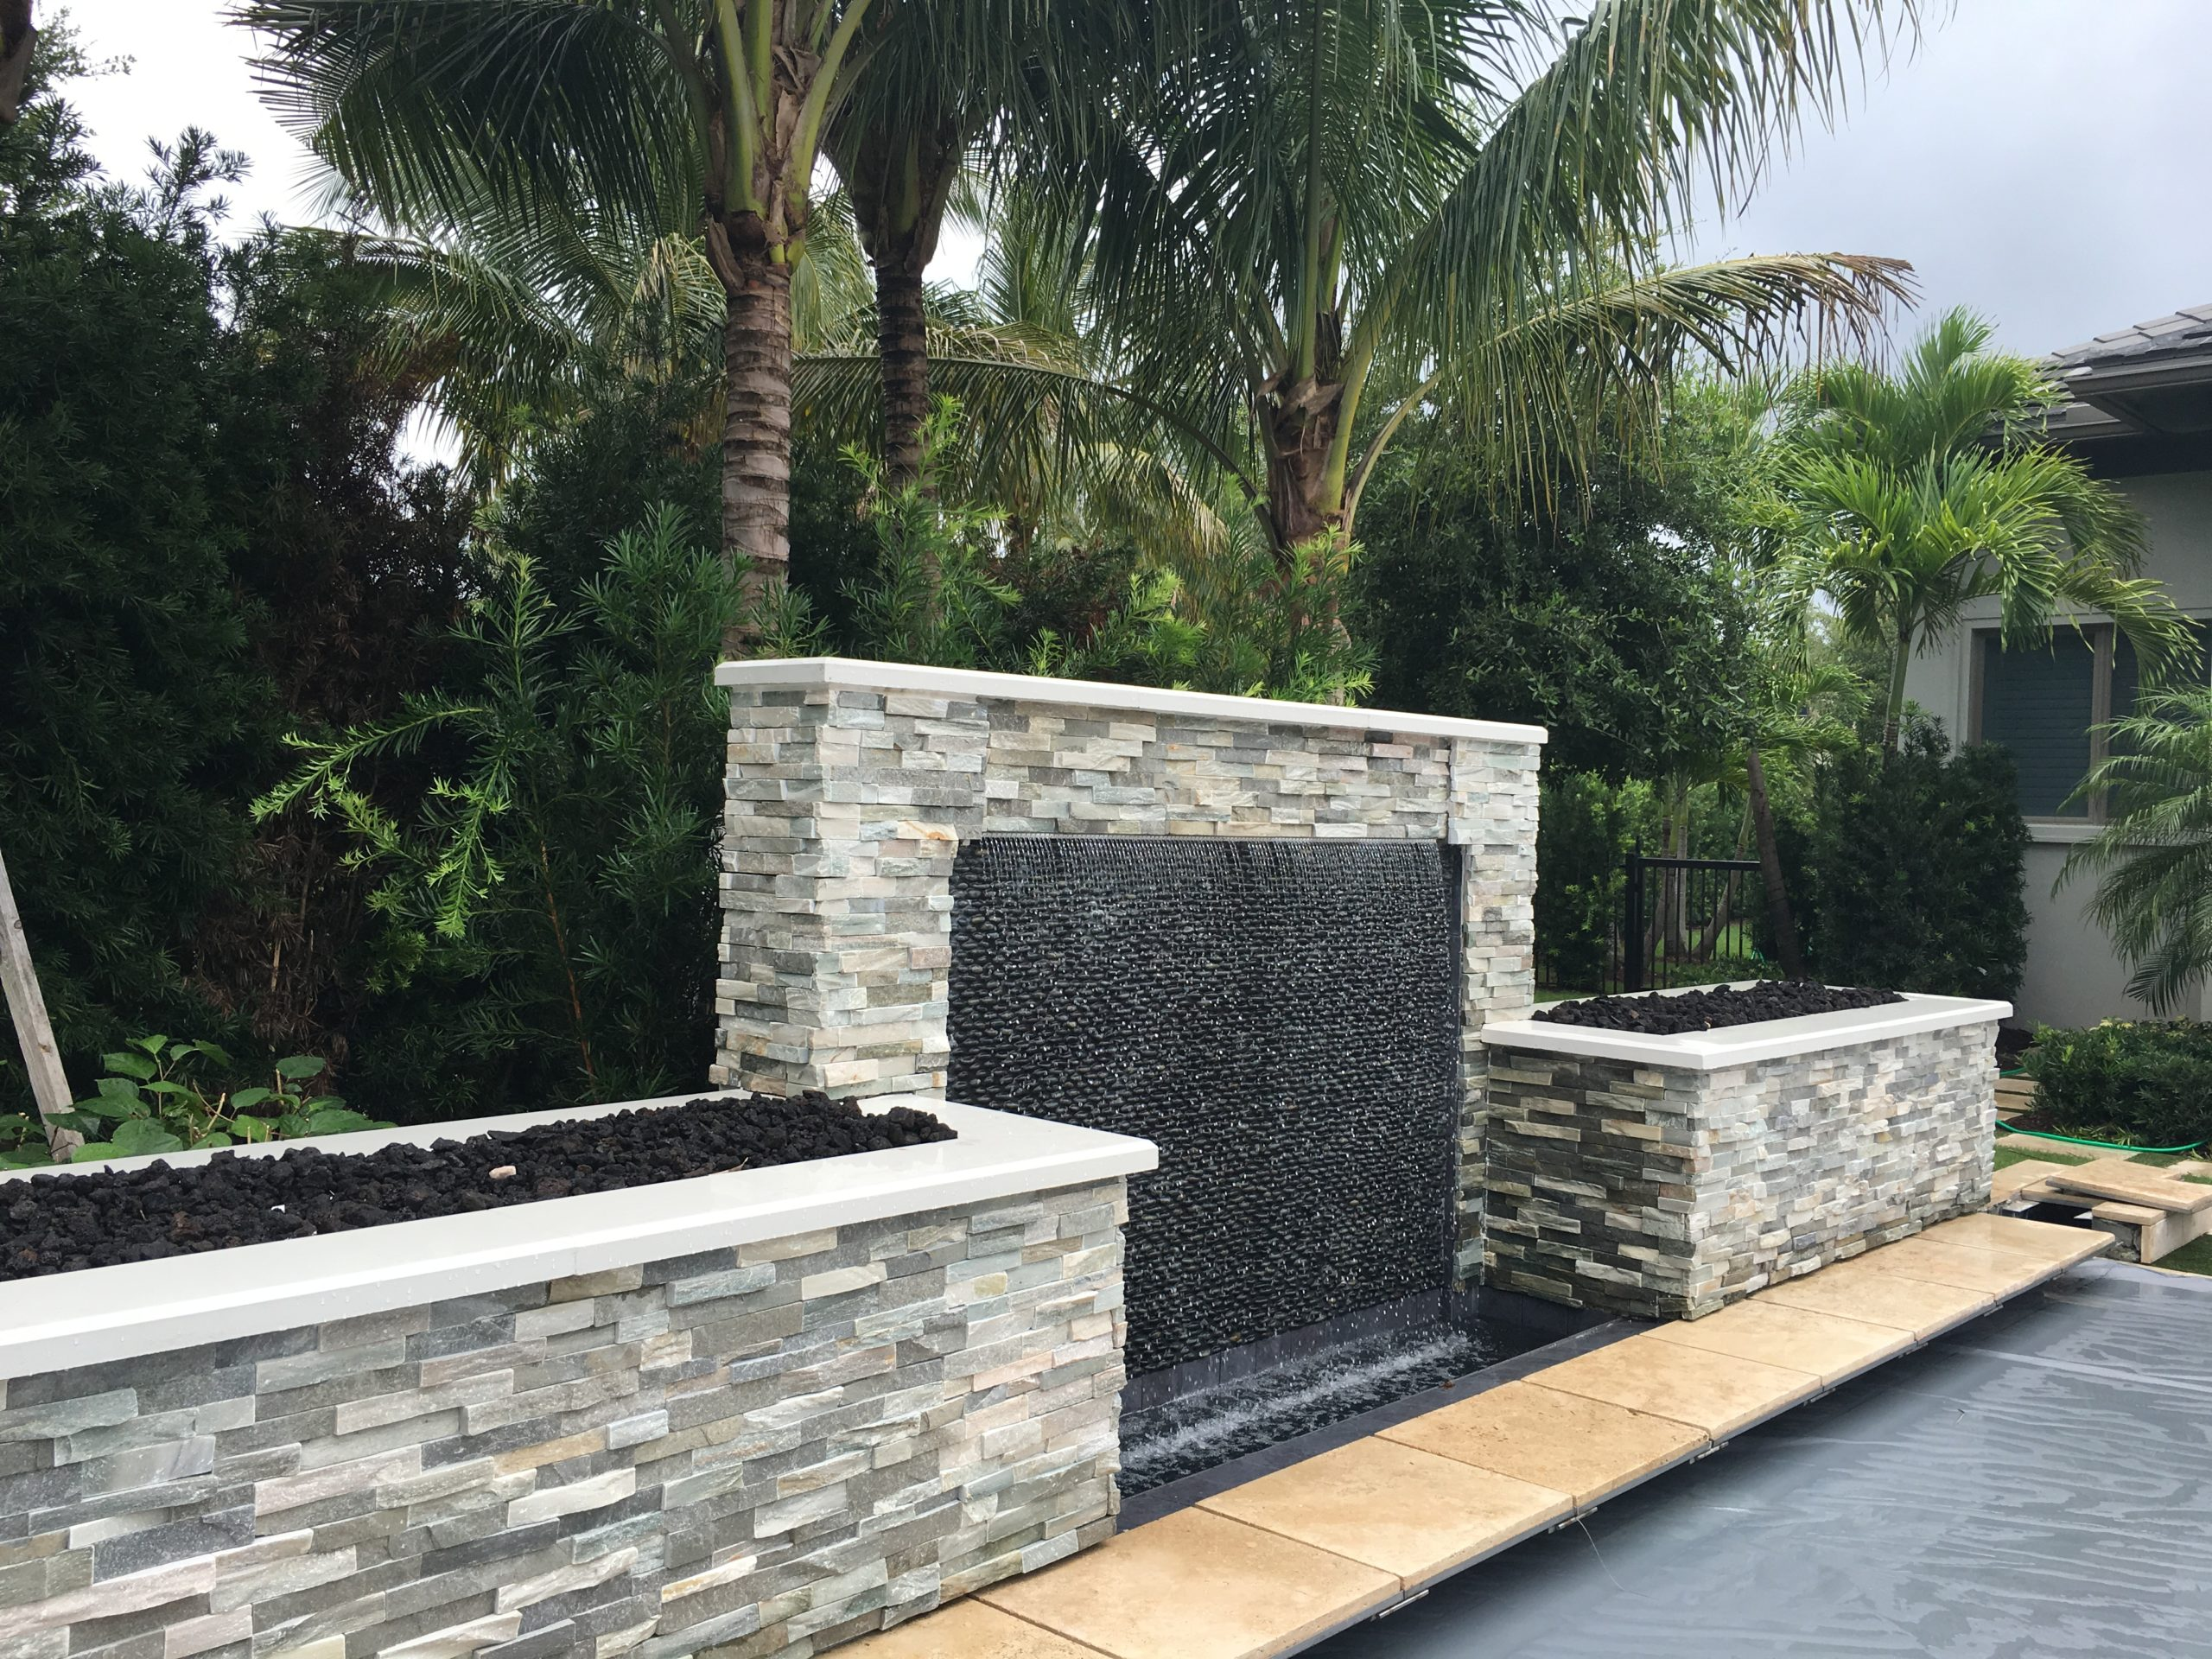 rhr pools of jupiter fl raised wall with sheer decent flanked by fire features